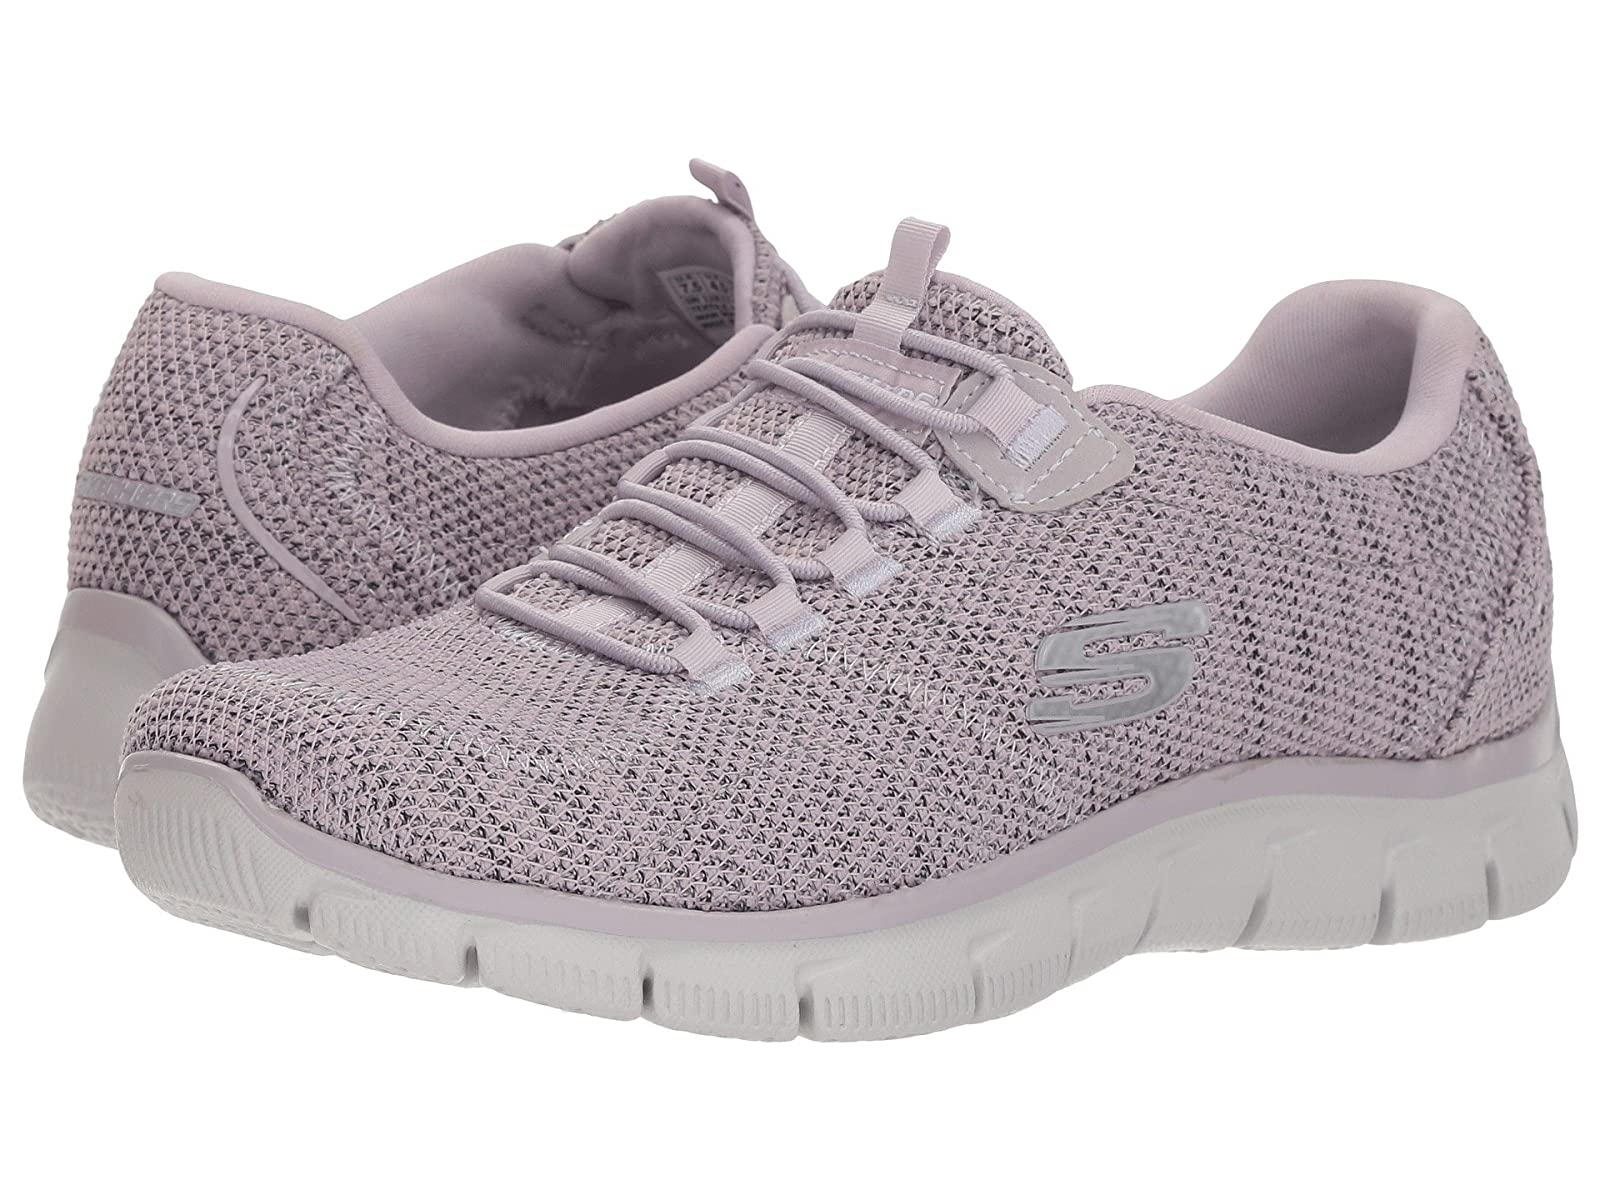 SKECHERS EmpireAtmospheric grades have affordable shoes